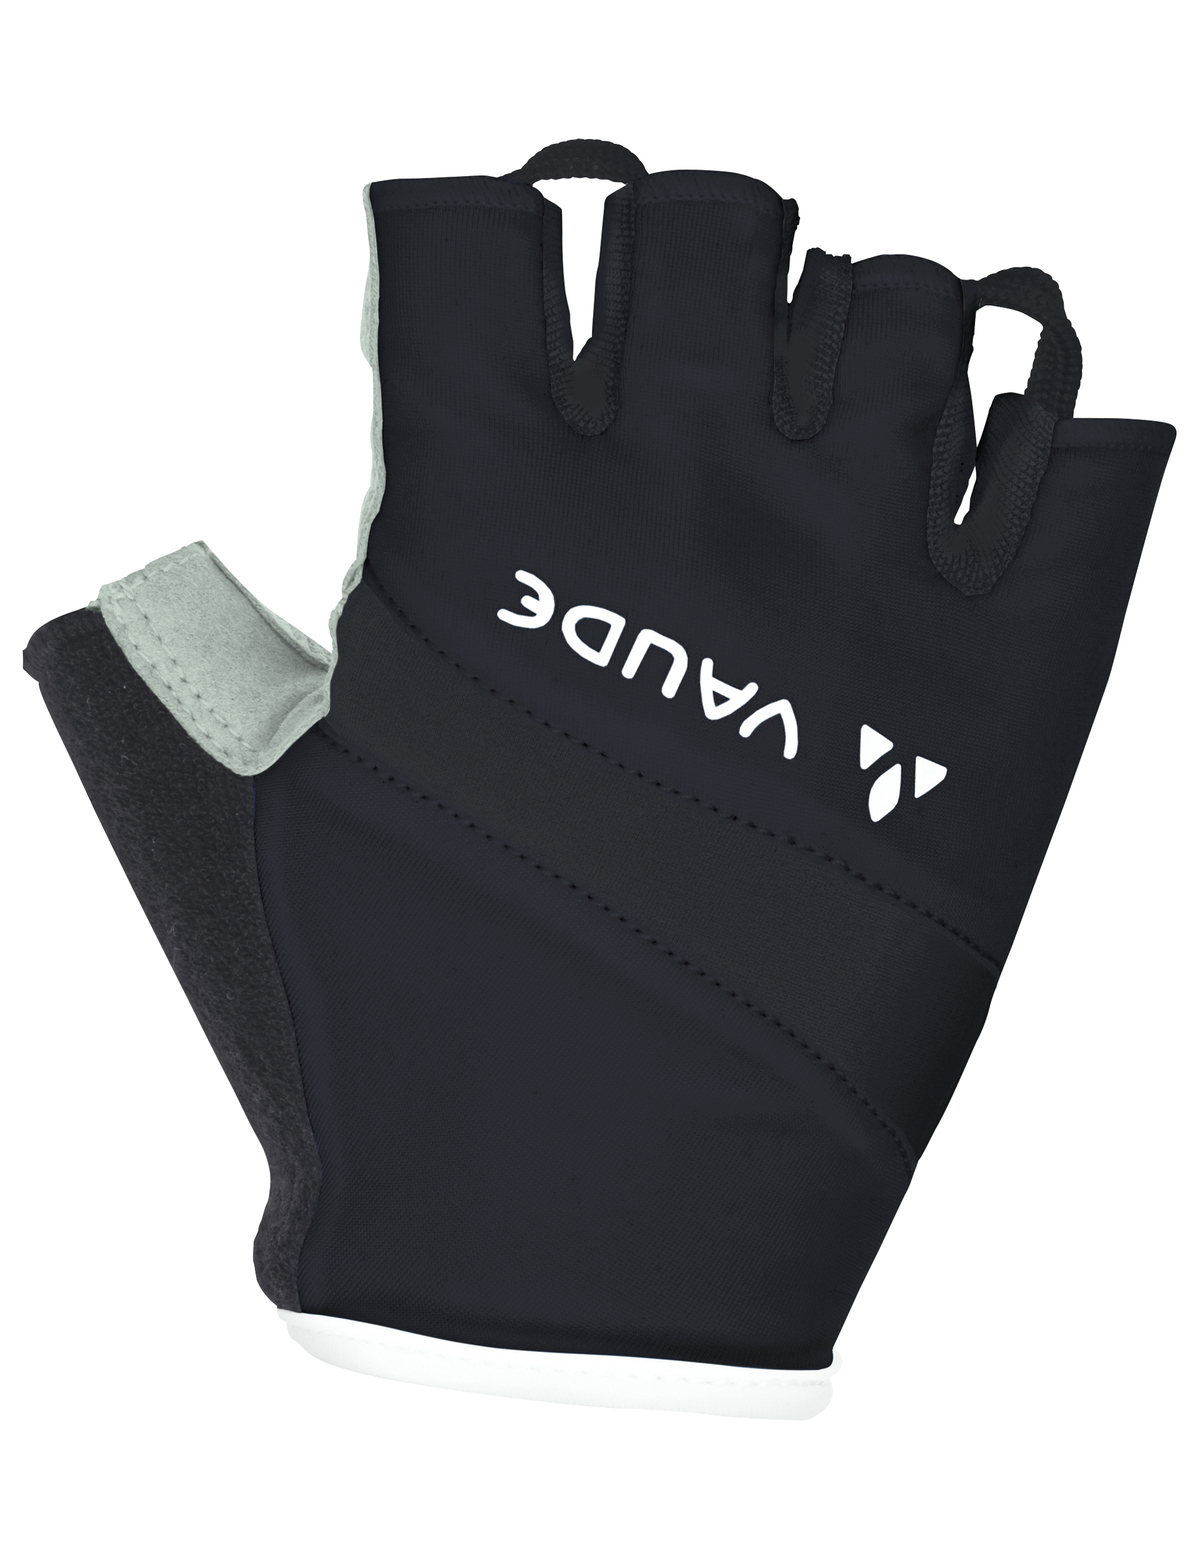 VAUDE Women´s Active Gloves black Größe 7 - schneider-sports